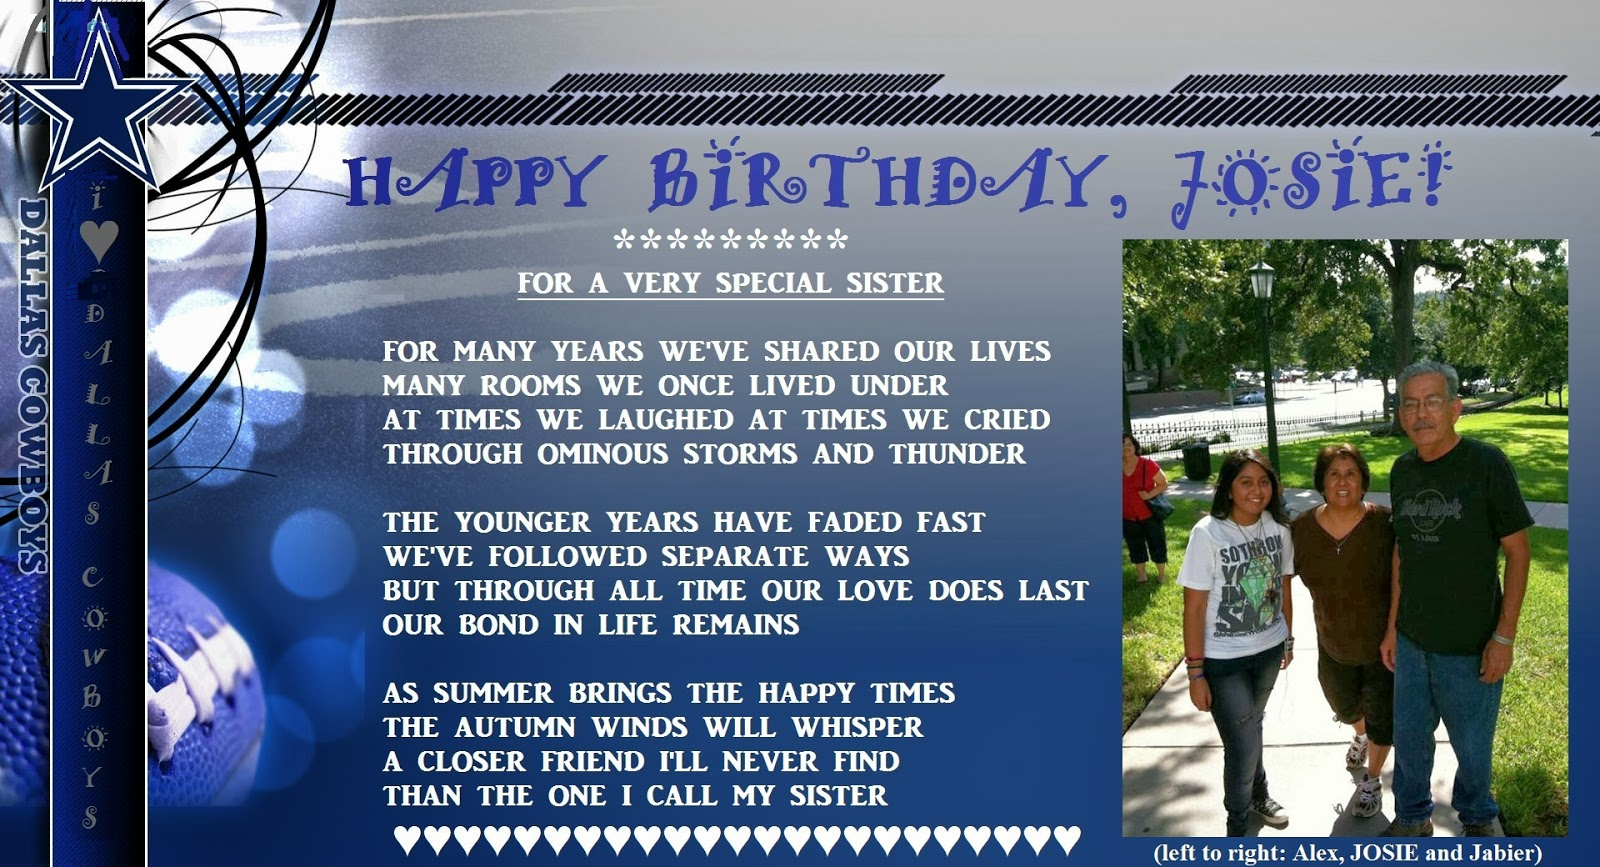 cowboy birthday poem ; Josie+H+2013+Birthday+Sisters+Poem+on+Dallas+Cowboys+Banner